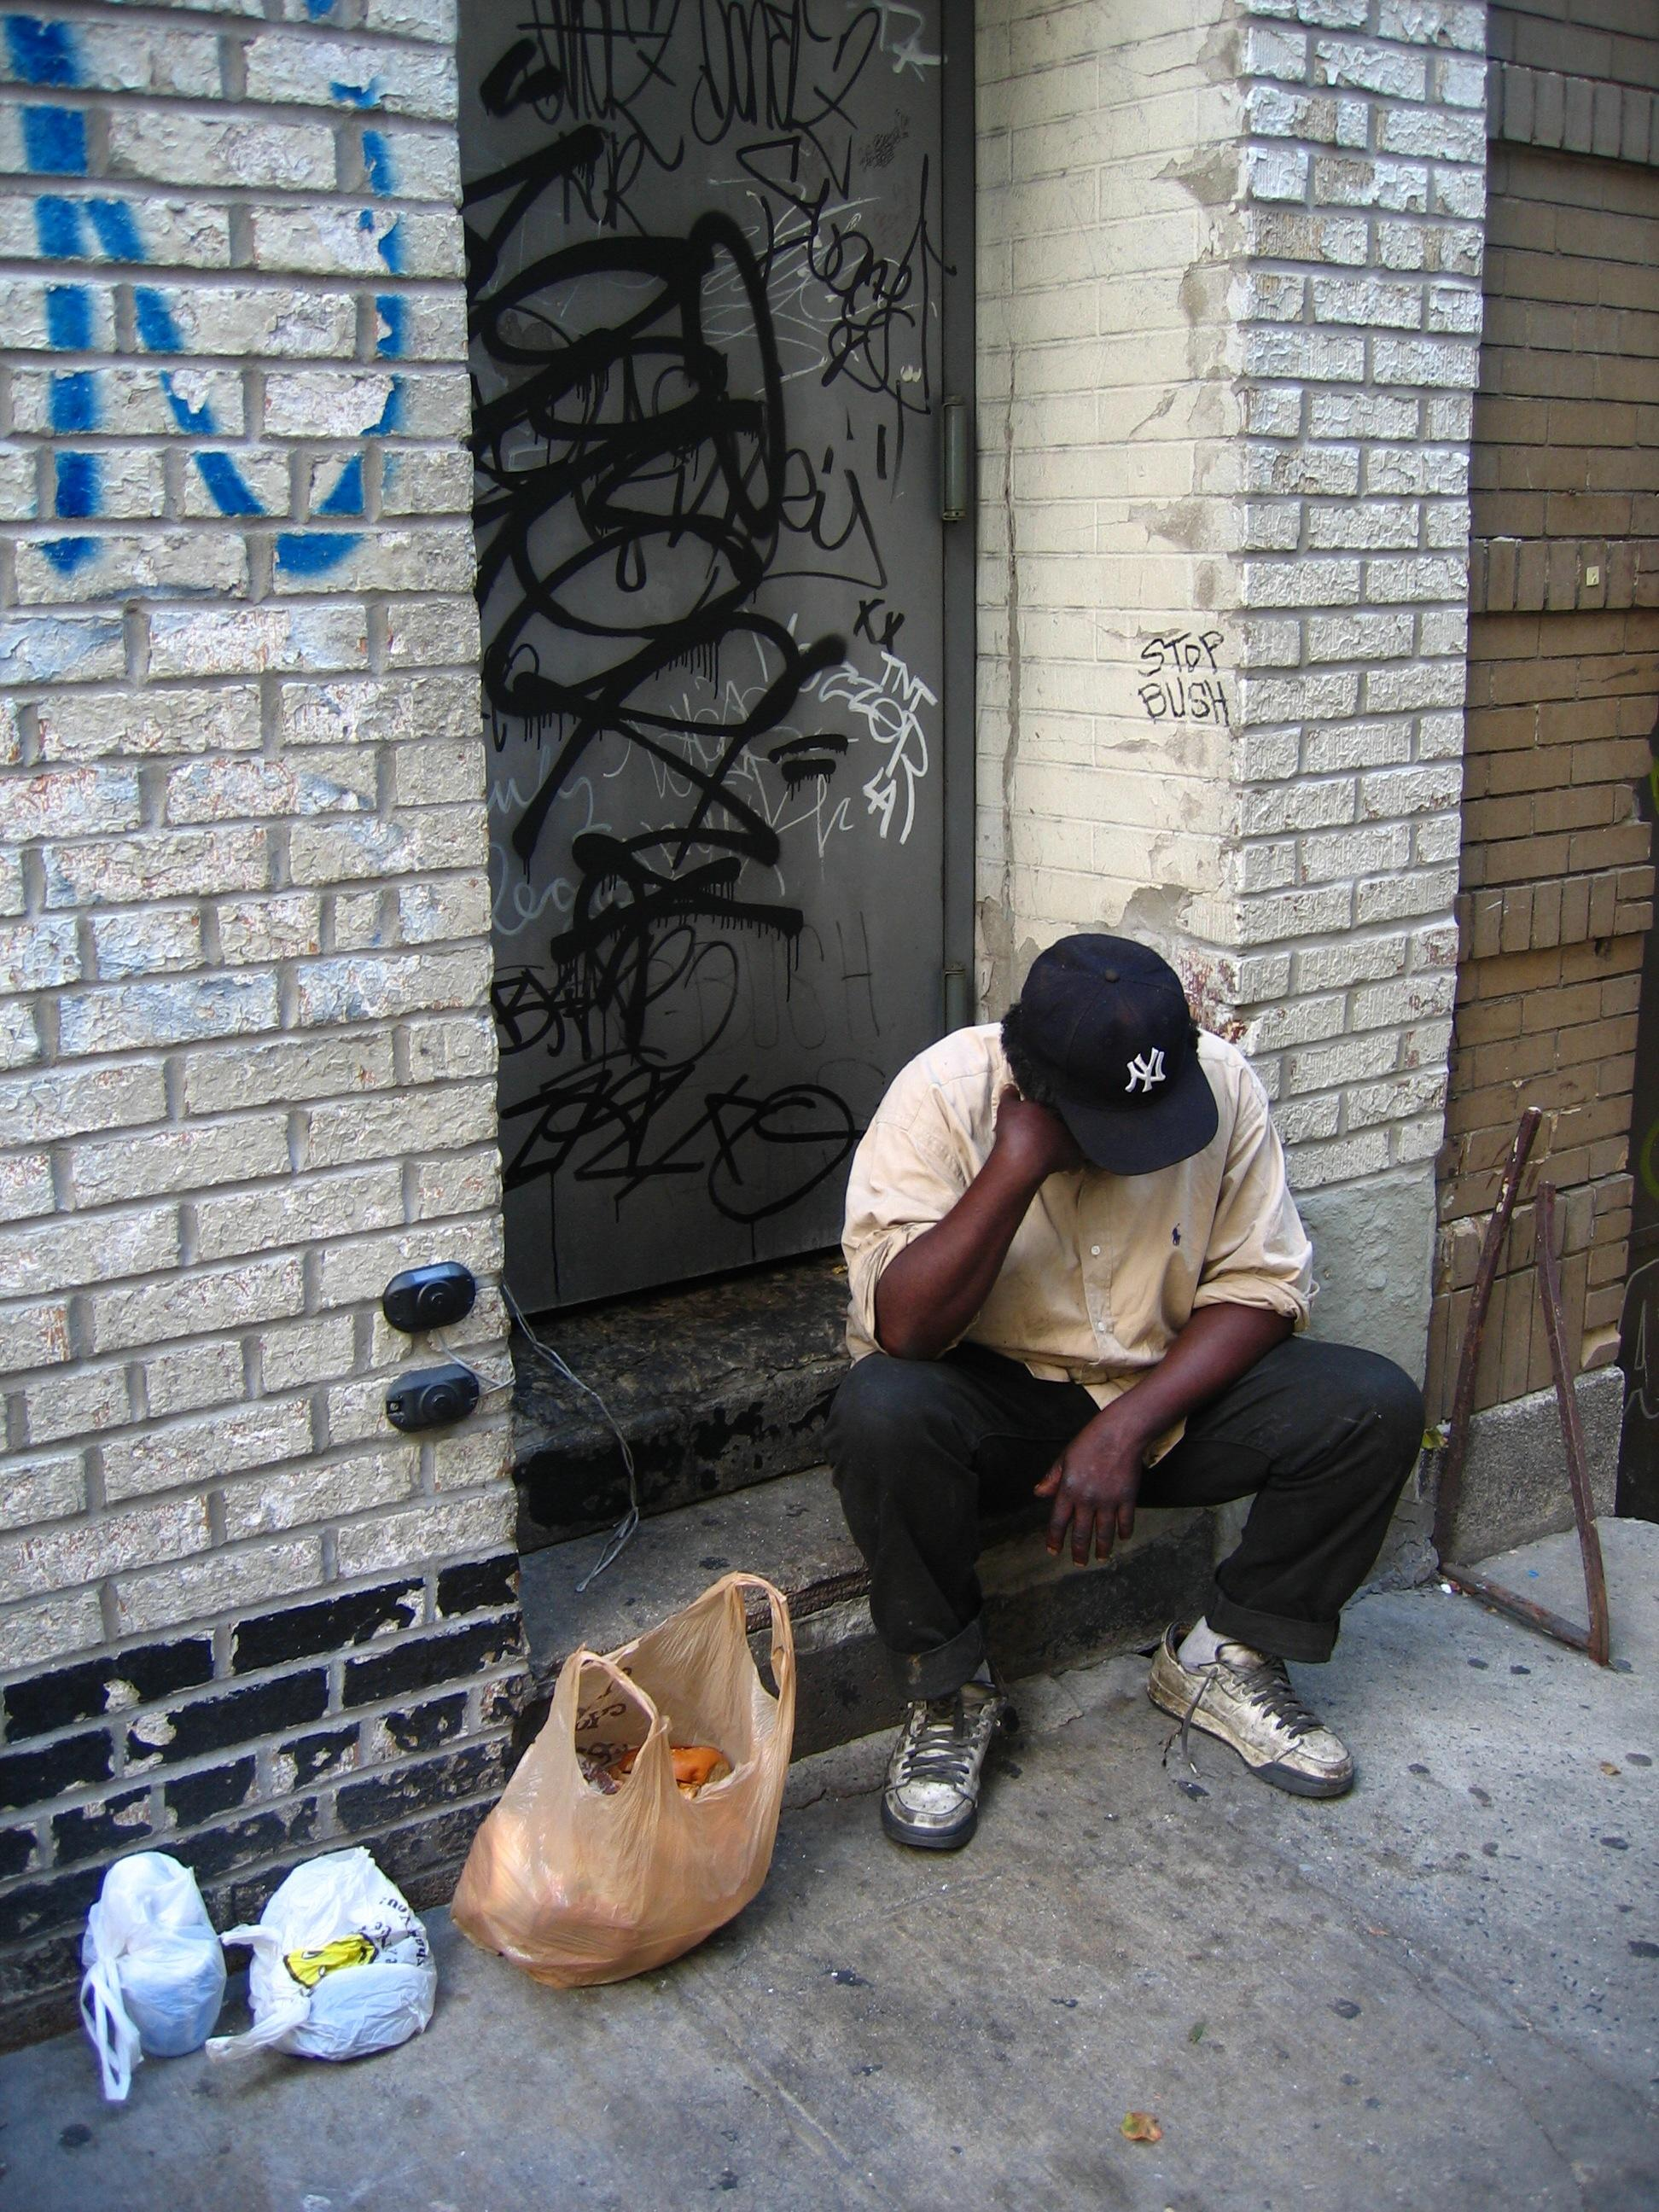 Does poverty foster crime